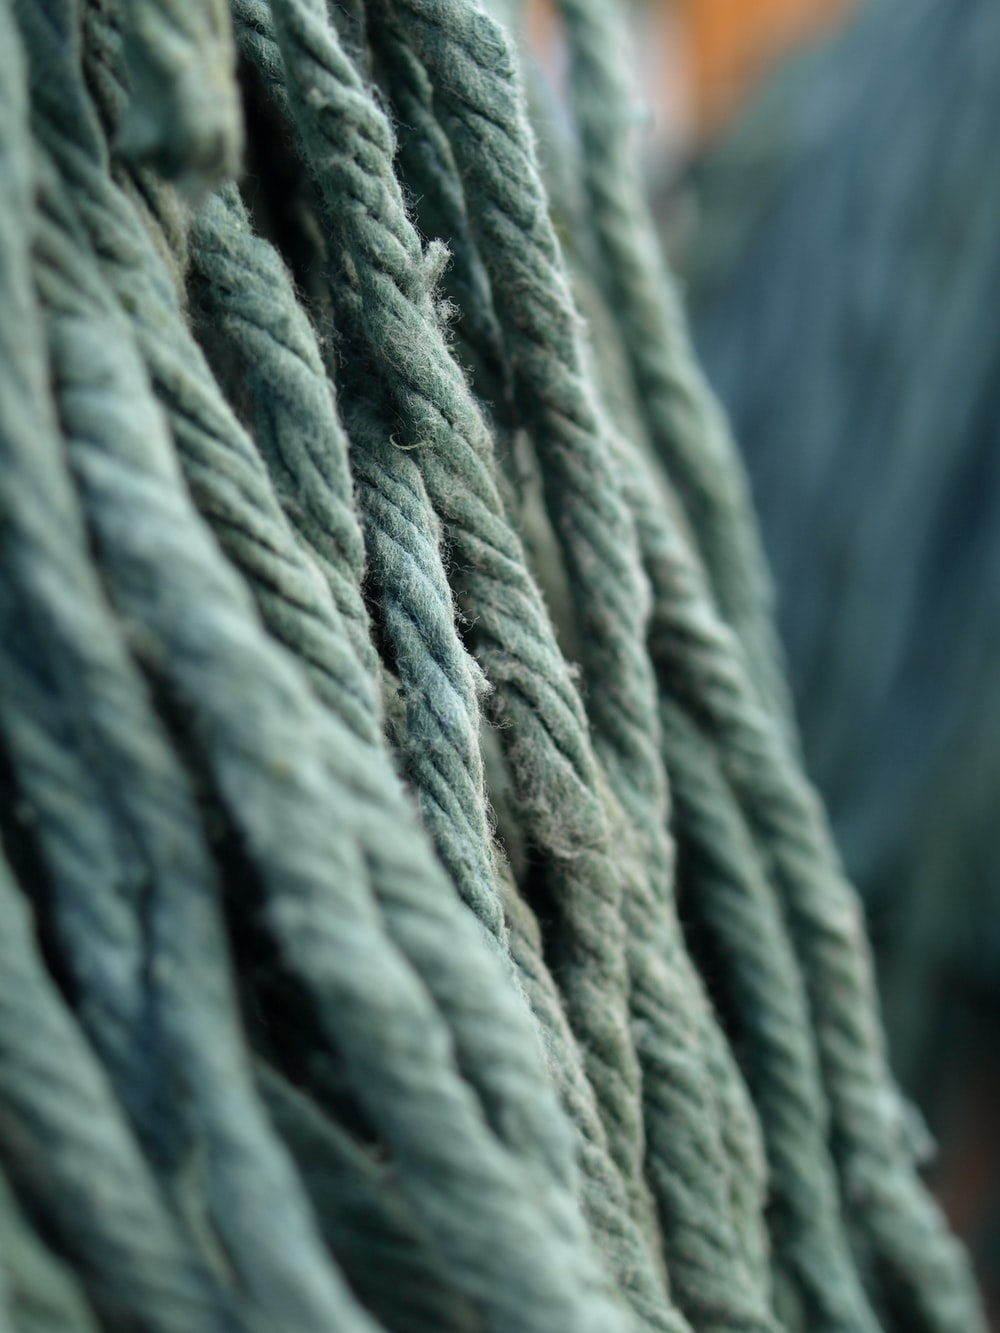 gray rope in close up photography